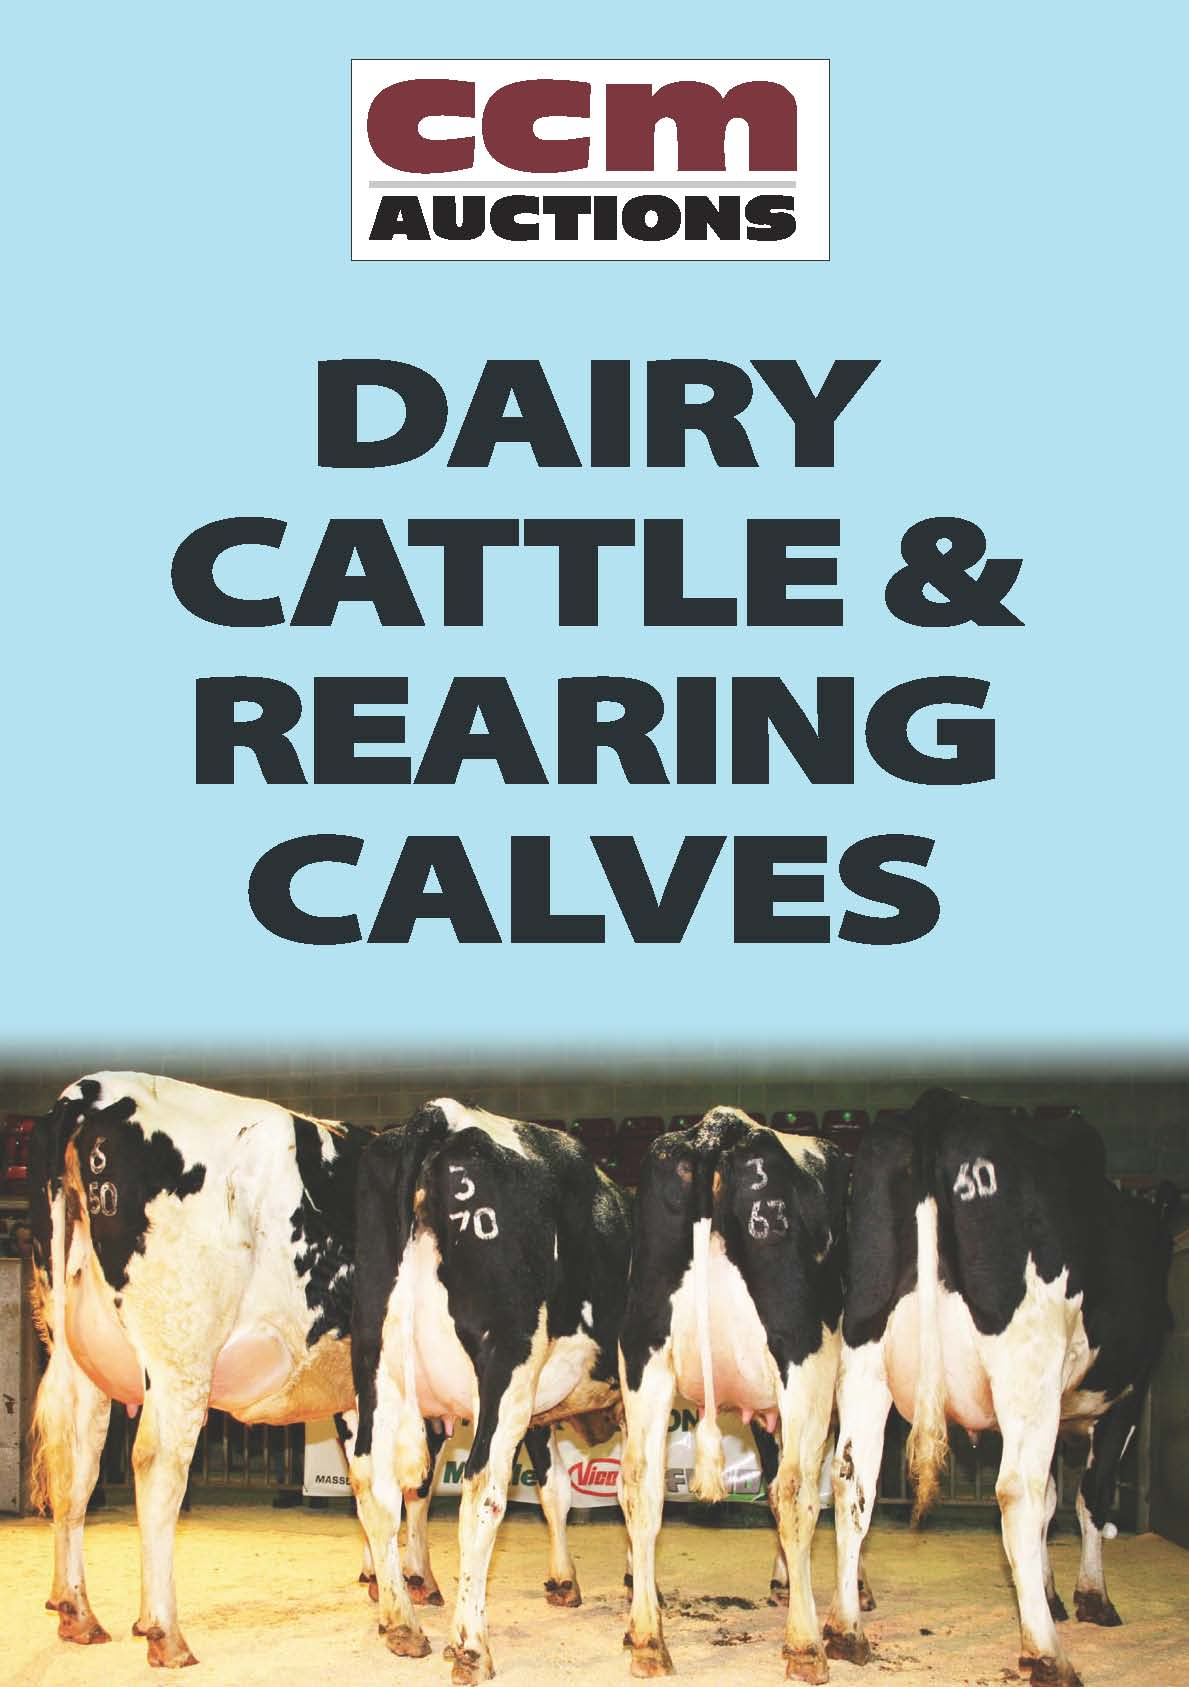 DAIRY & CALVES - MONDAY 15TH AUGUST 2016